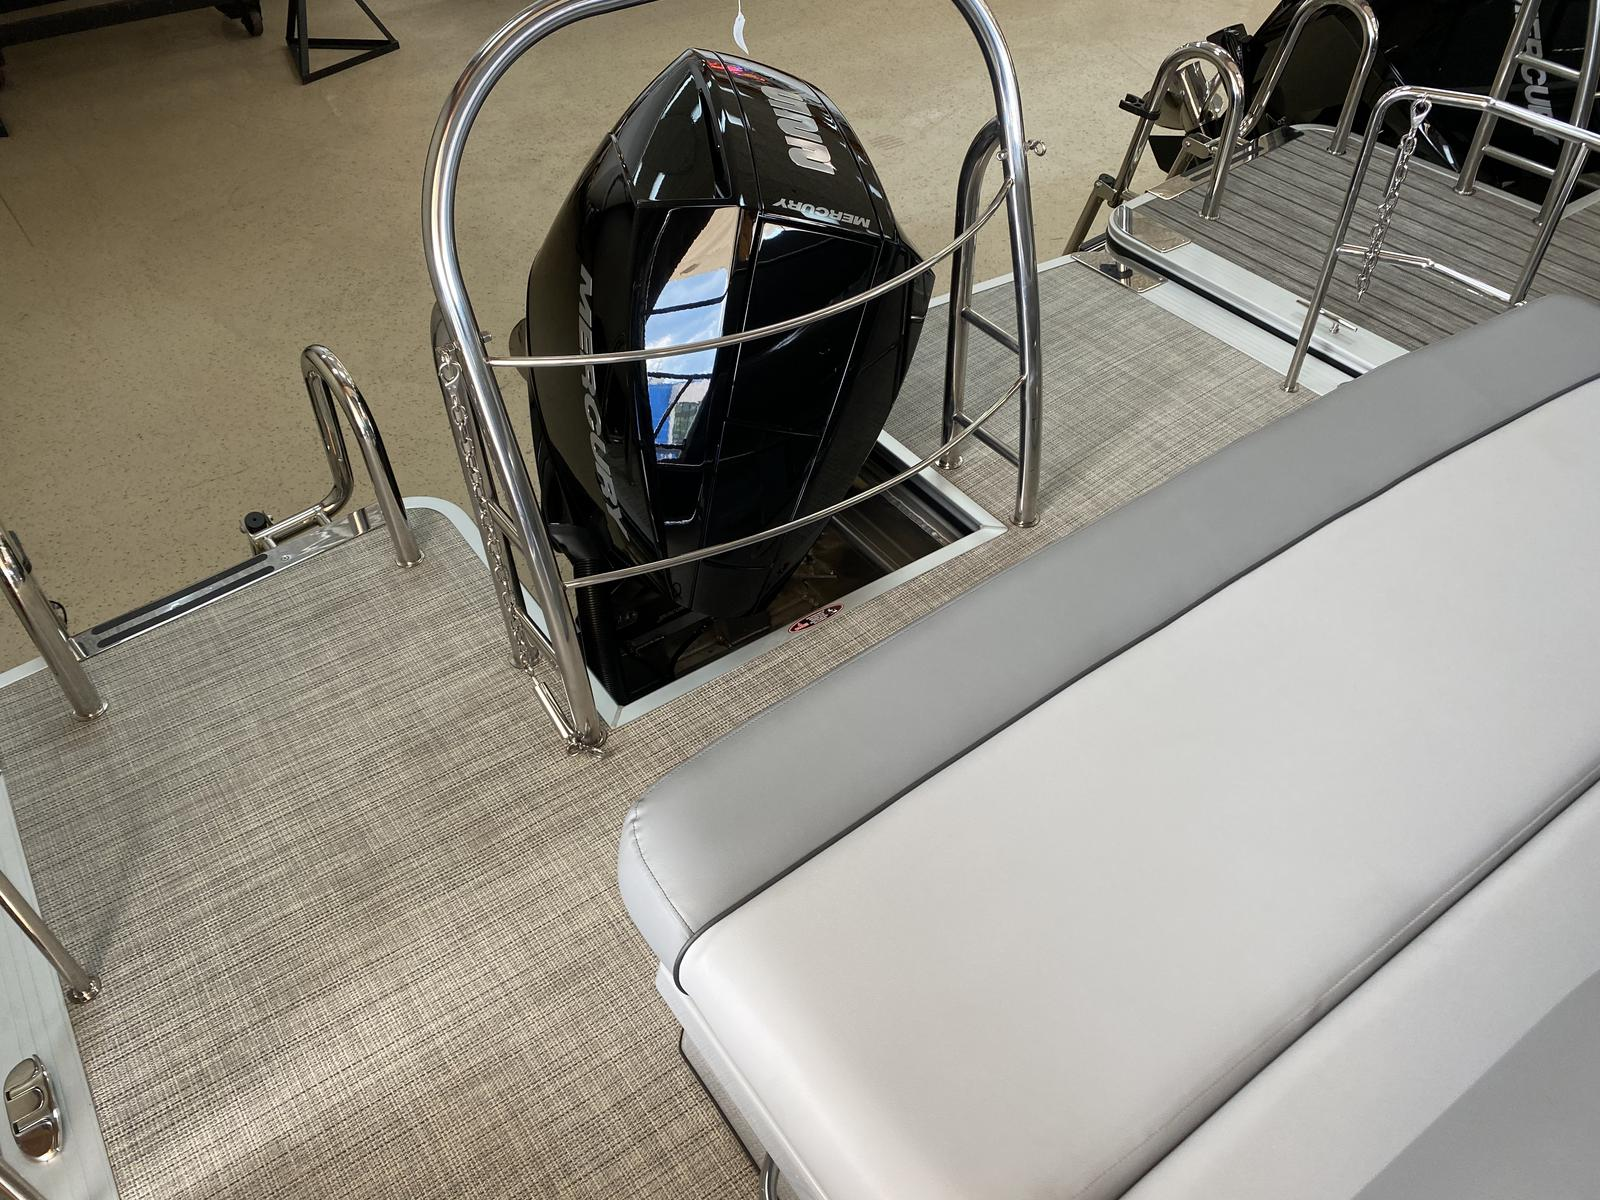 2020 Harris boat for sale, model of the boat is Grand Mariner 250 & Image # 4 of 13